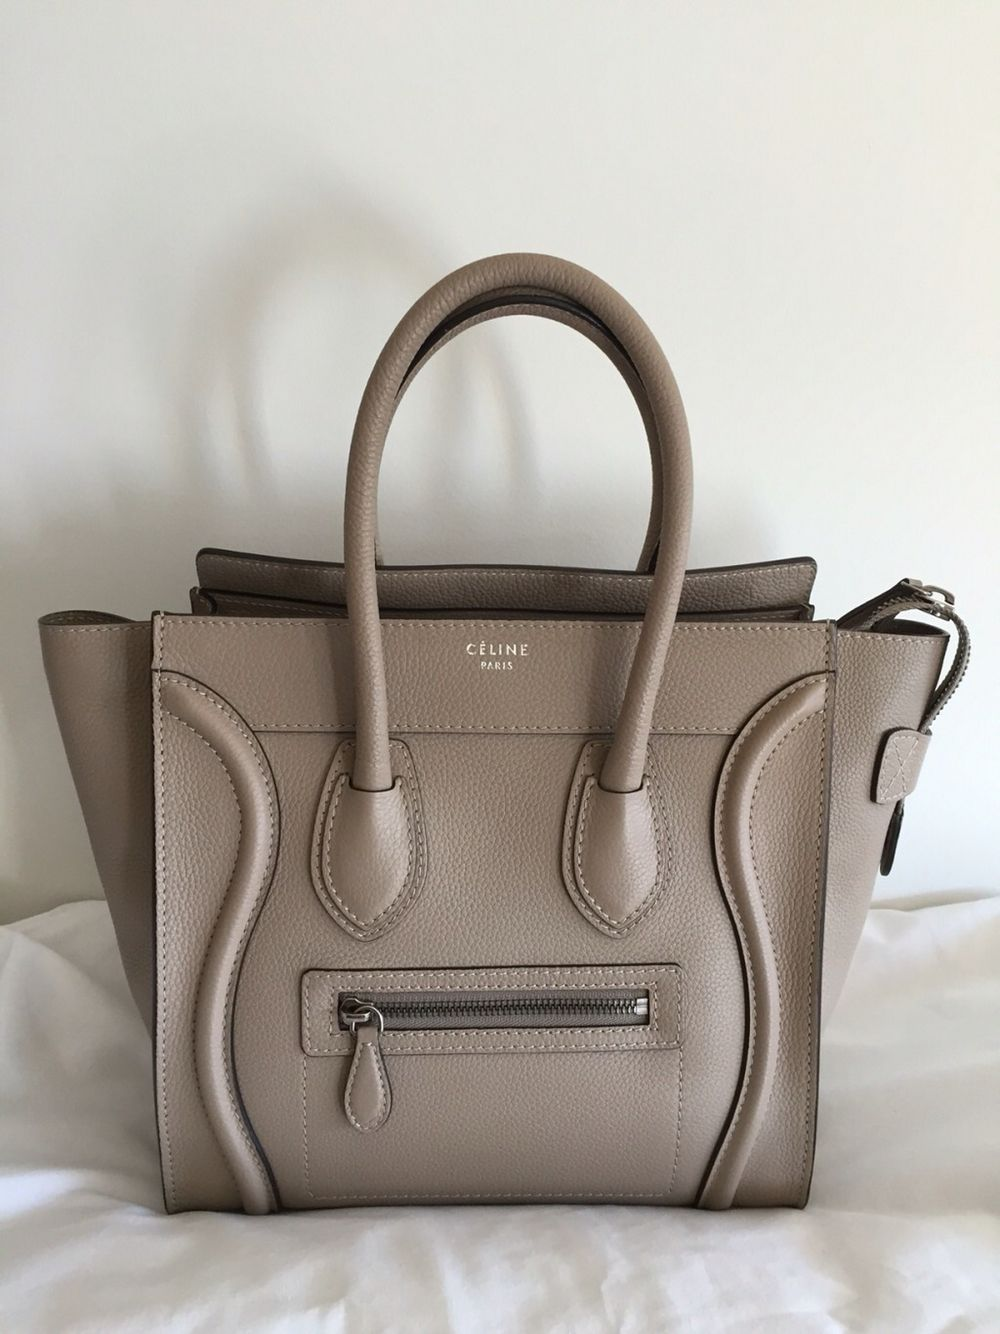 Celine Luggage Bags Womens Purses